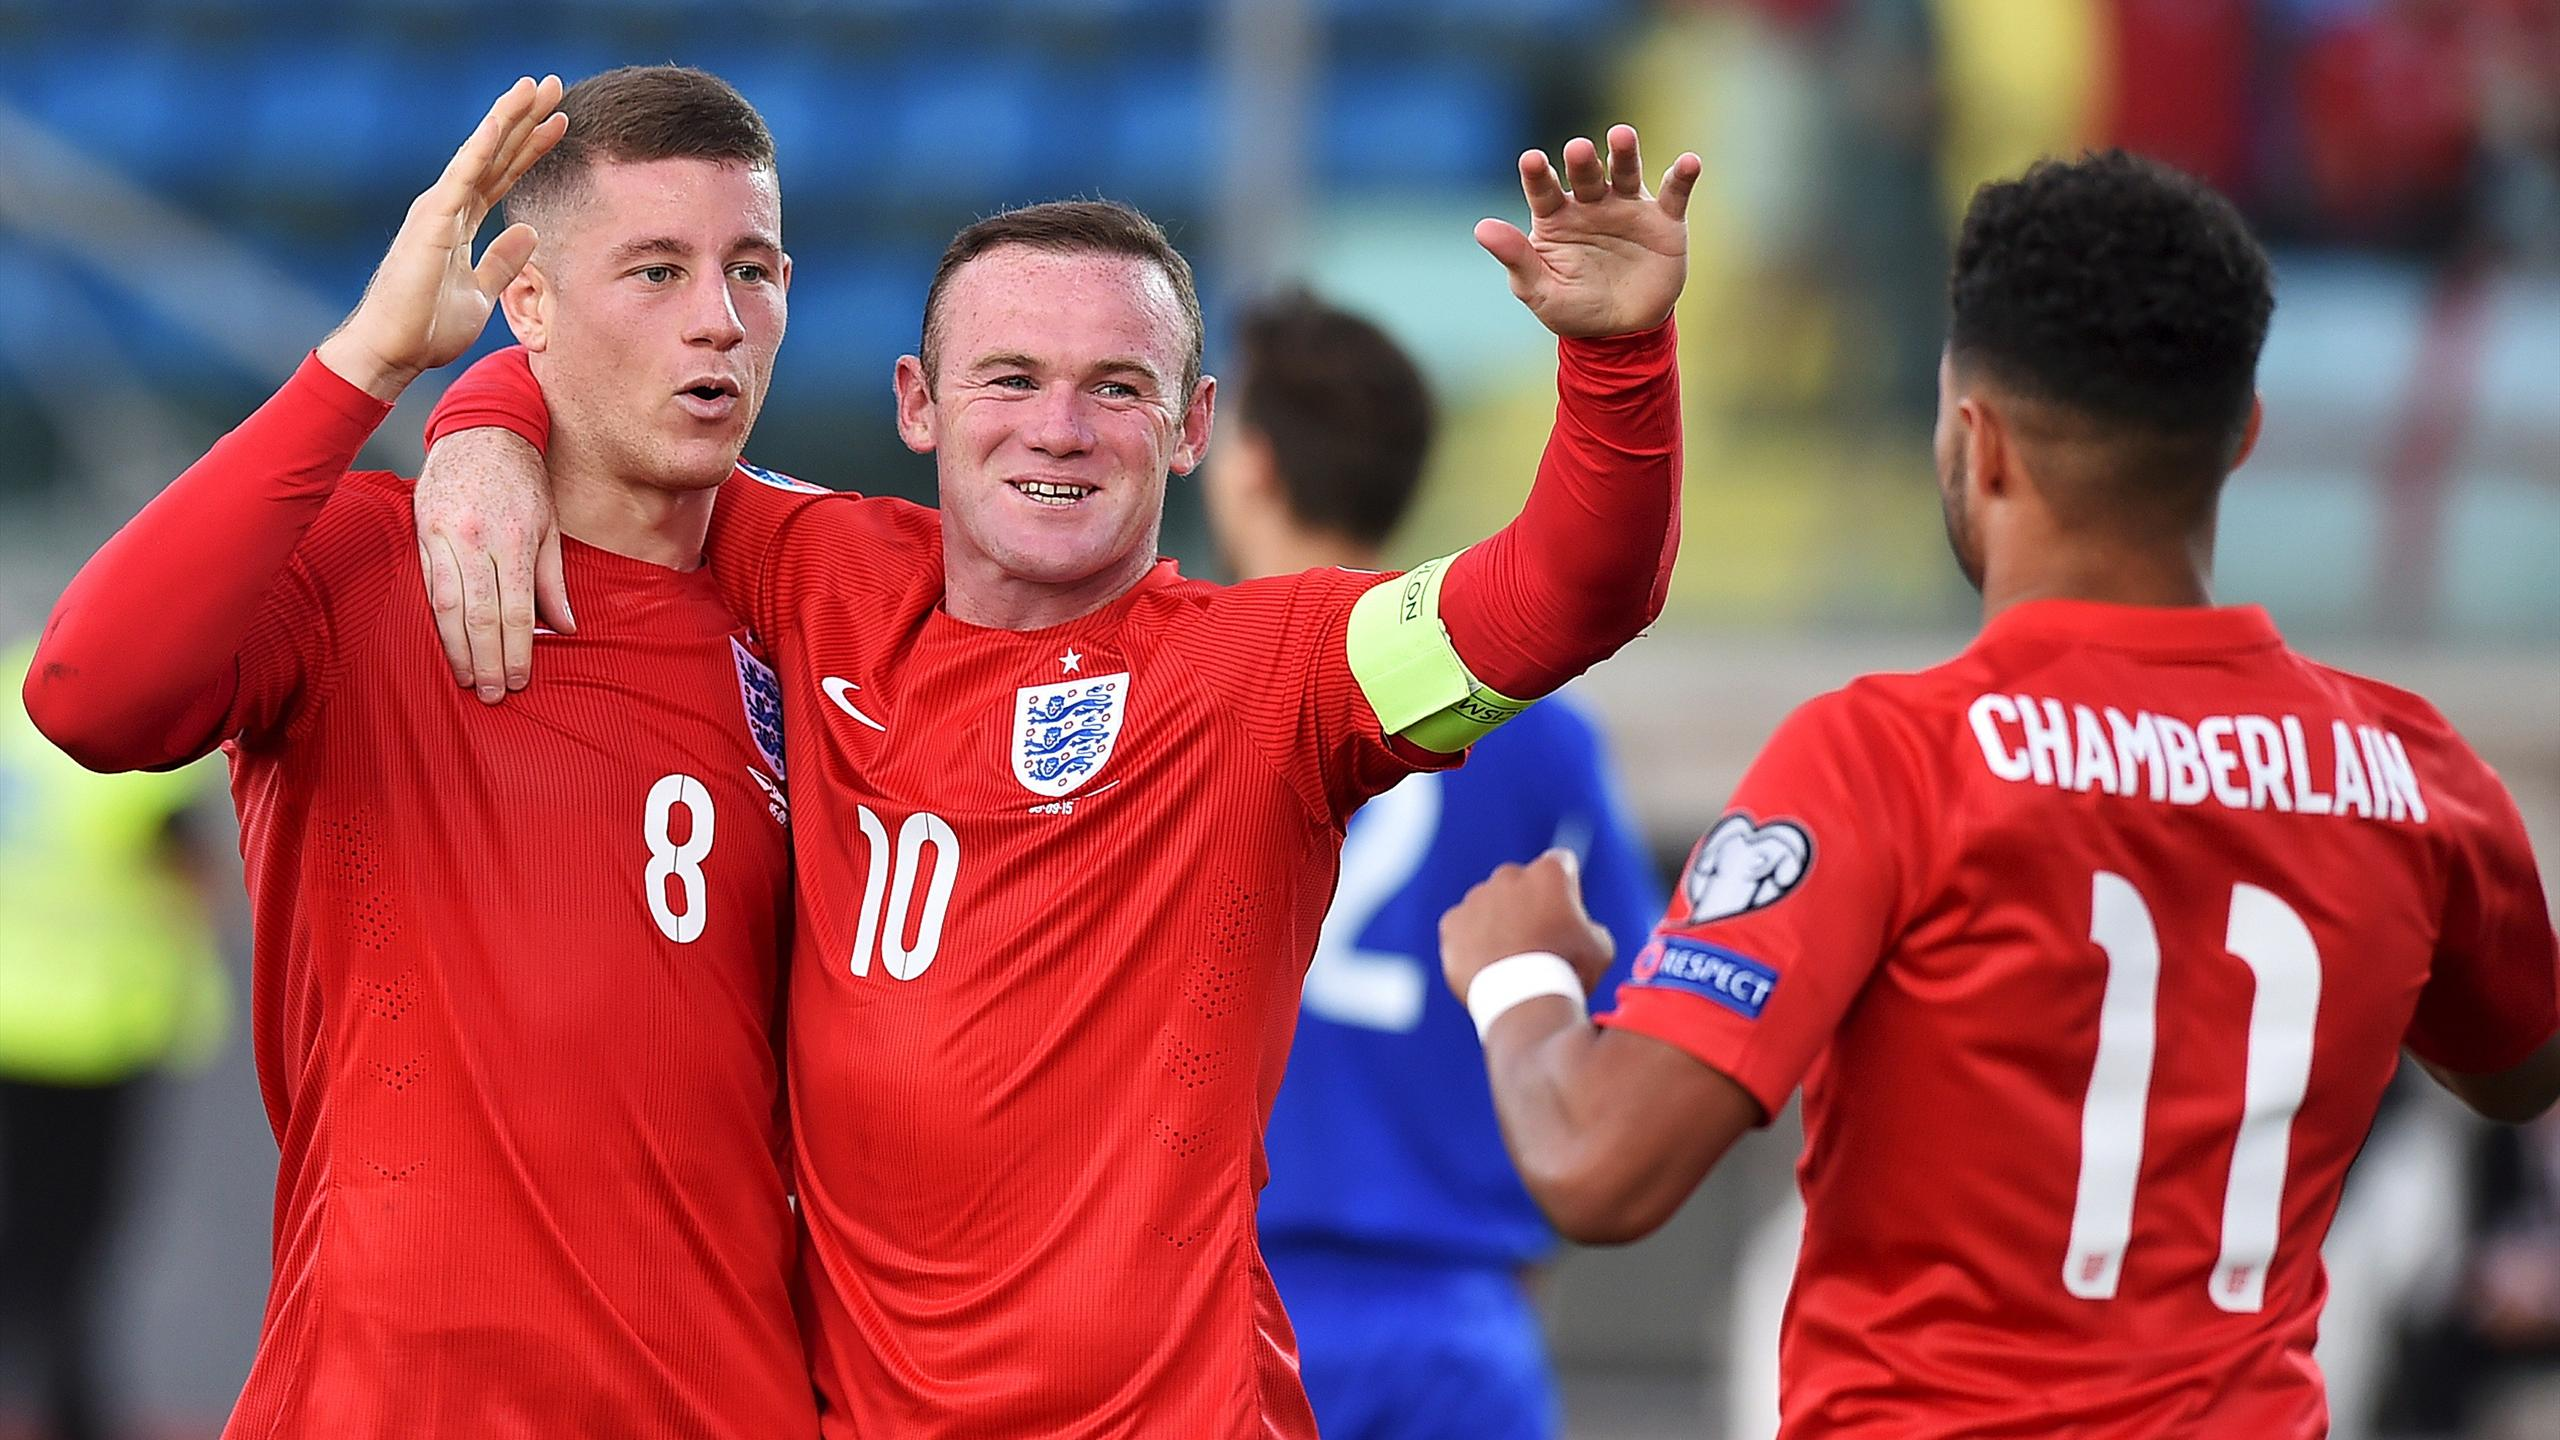 England's Ross Barkley (L) celebrates after scoring a goal with team mates Wayne Rooney (C) and Alex Oxlade-Chamberlain during their Euro 2016 qualifier against San Marino at the Olympic stadium in Serravalle